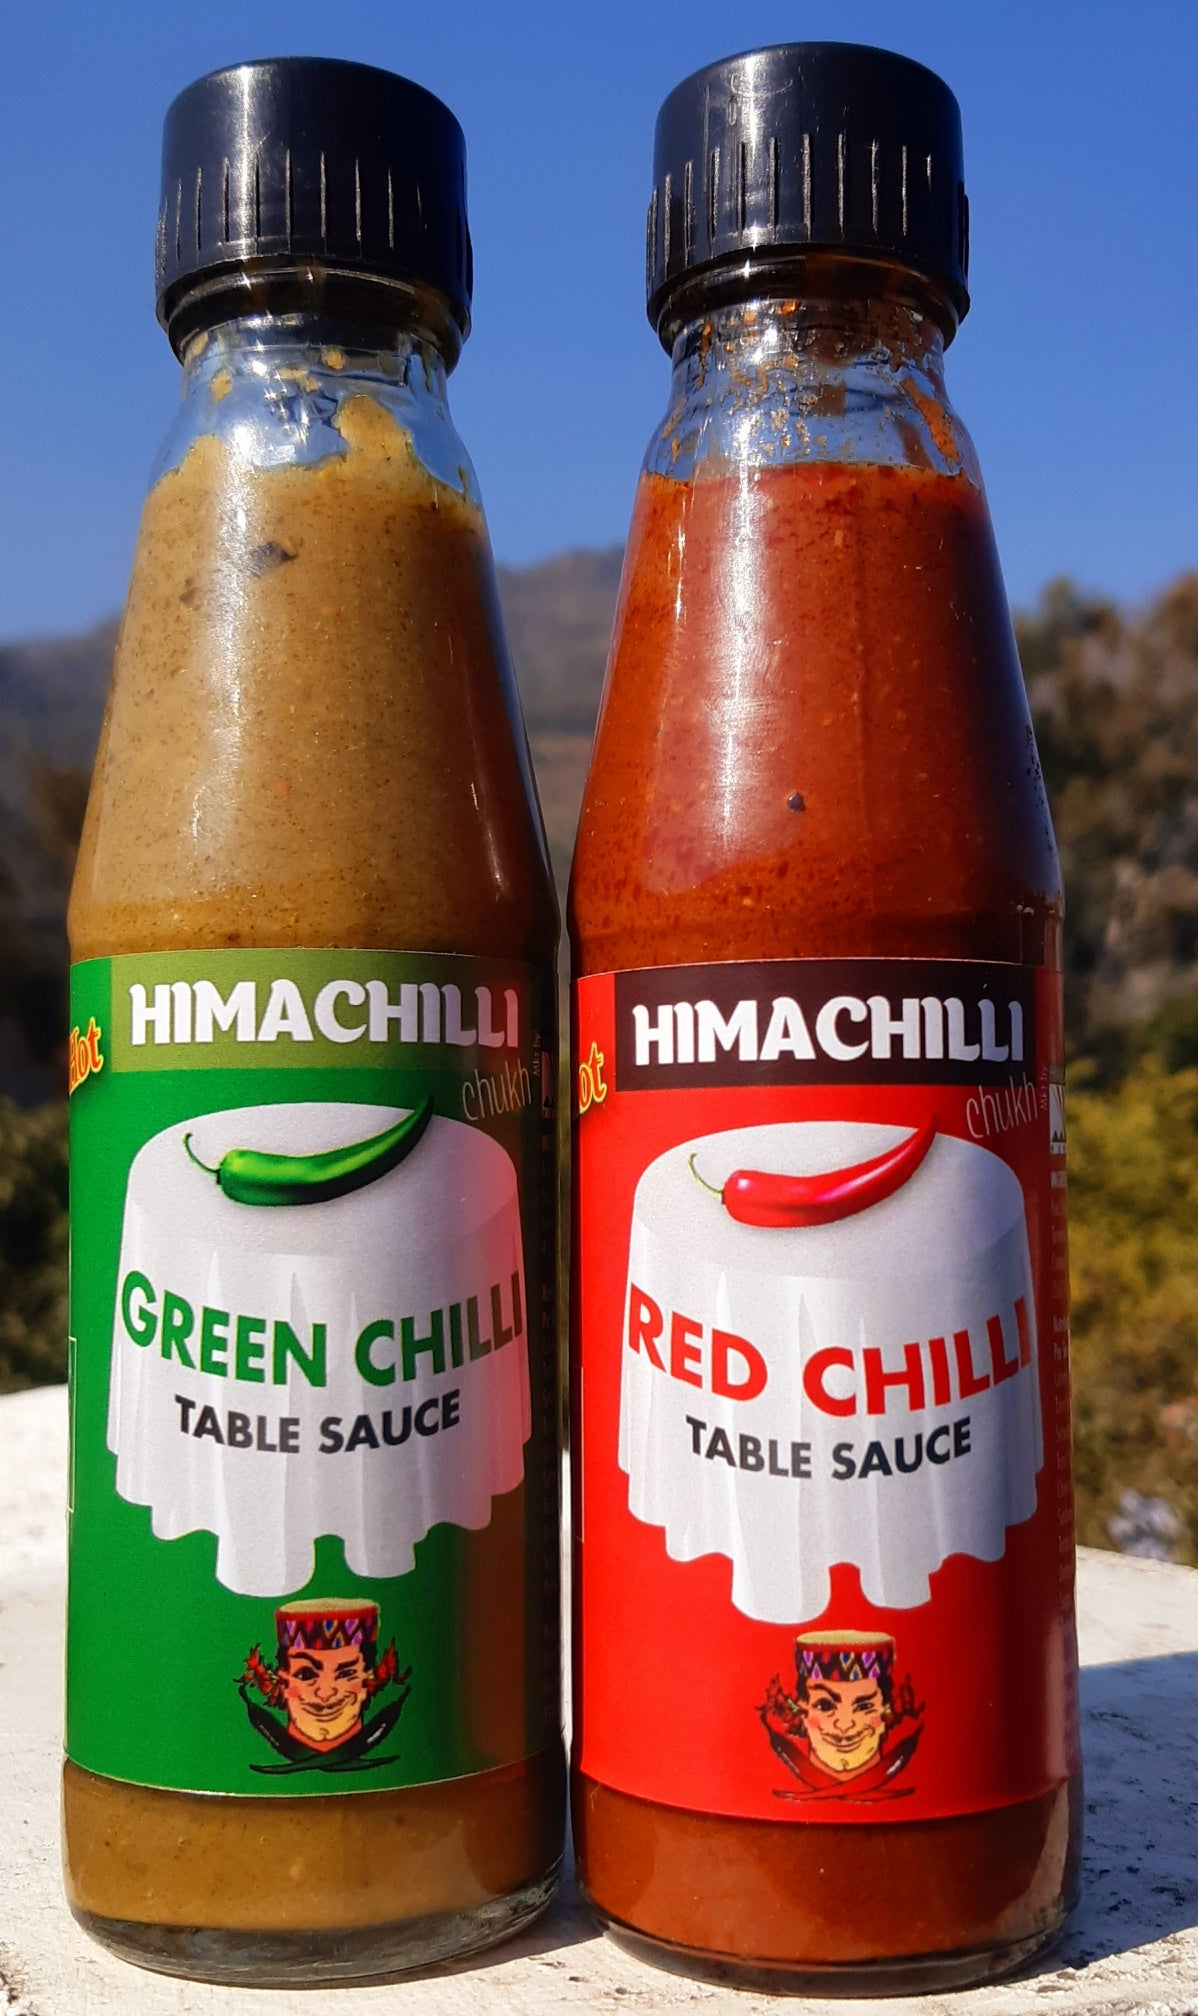 Himachilli, Hot sauce, Red Chilli, Green Chilli, Very Hot